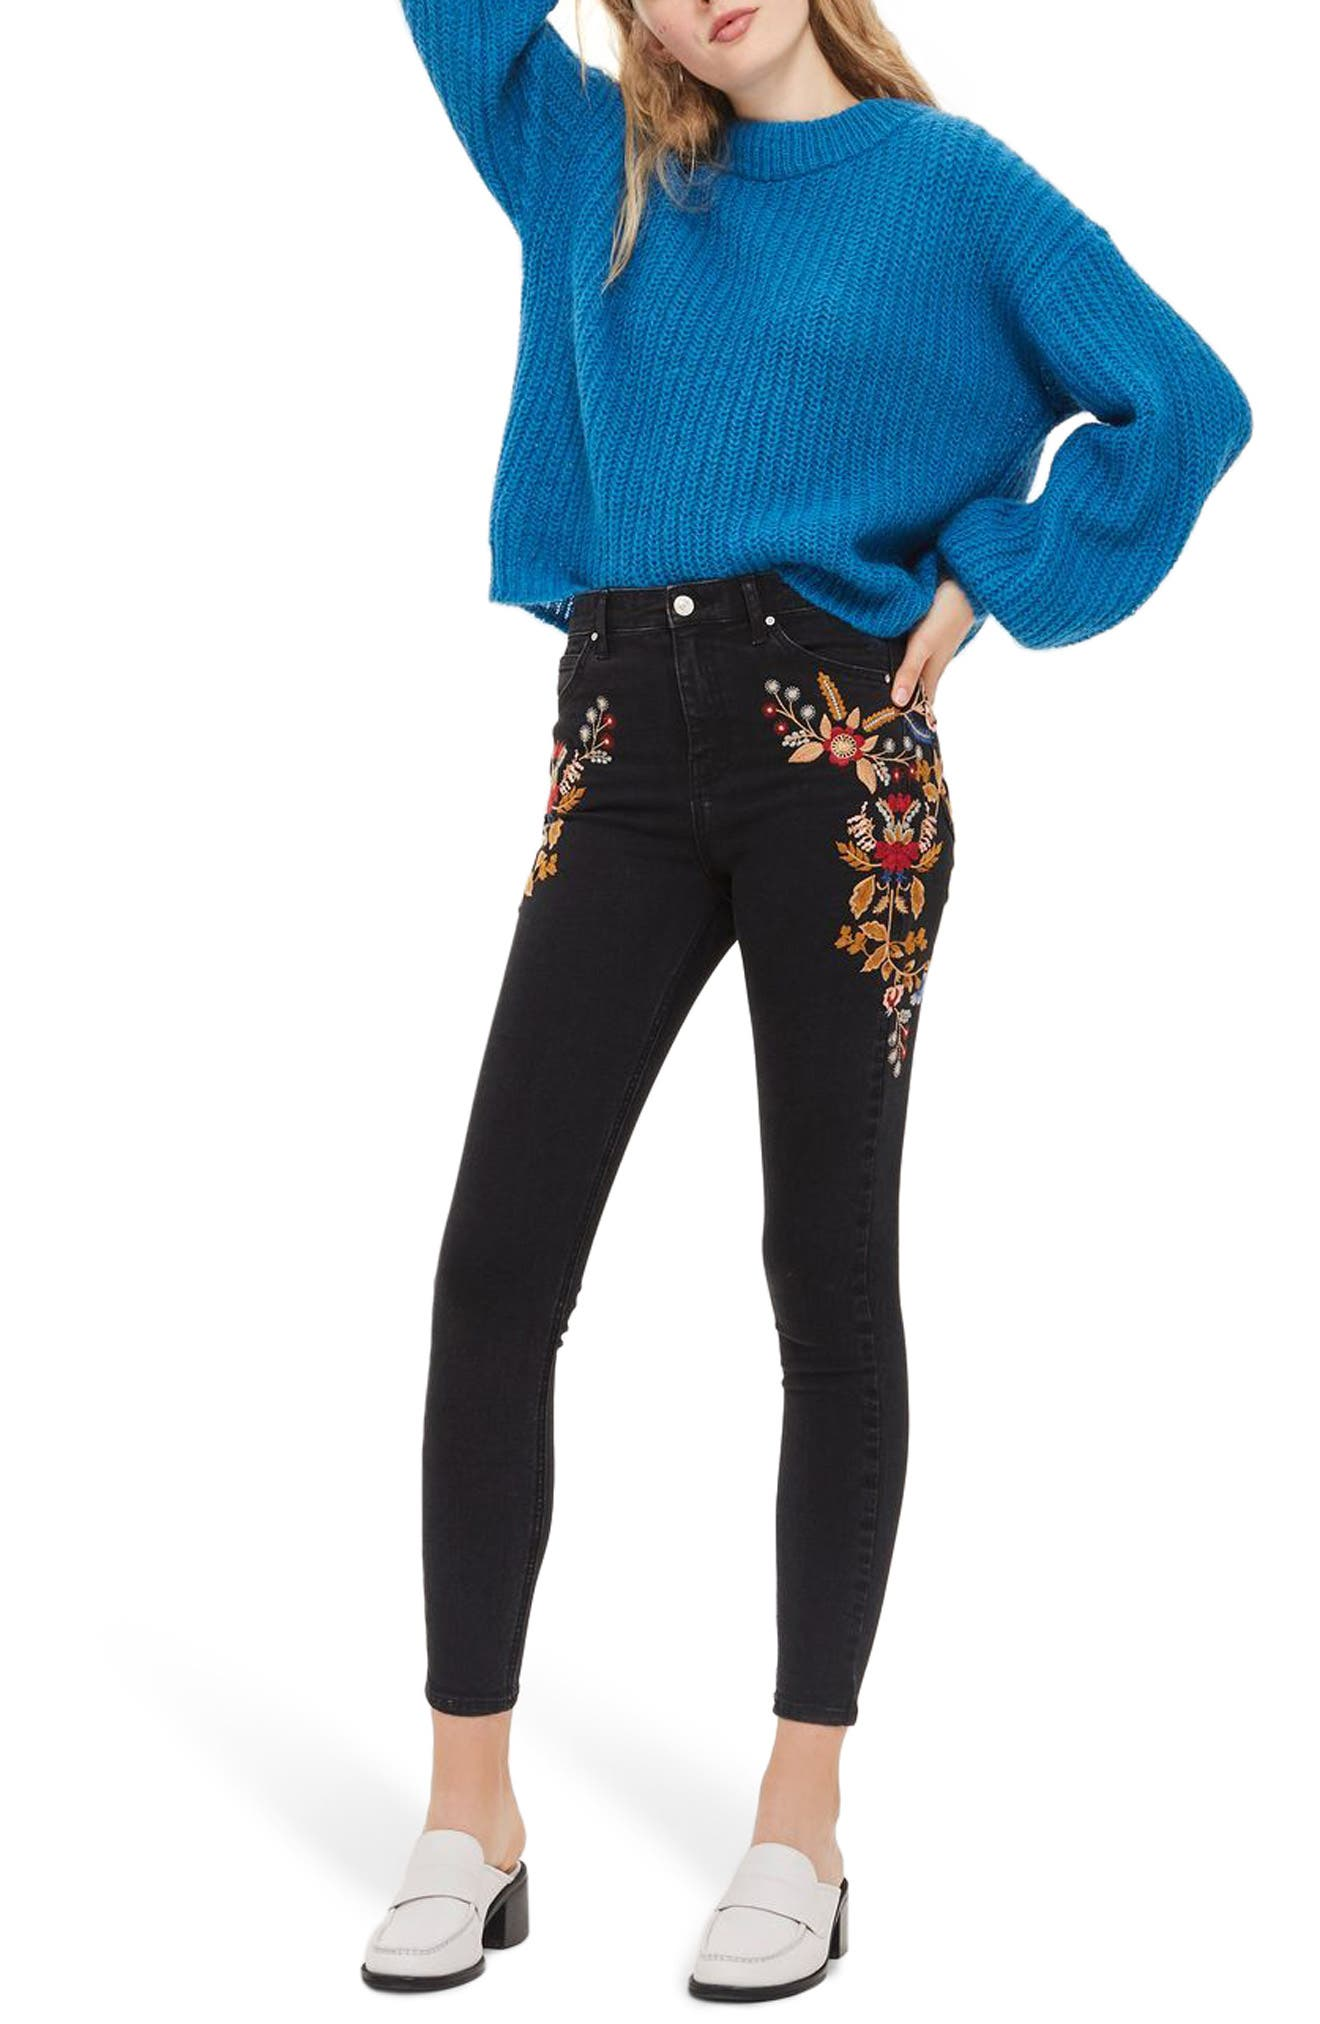 Topshop Jamie Embroidered High Waist Skinny Jeans